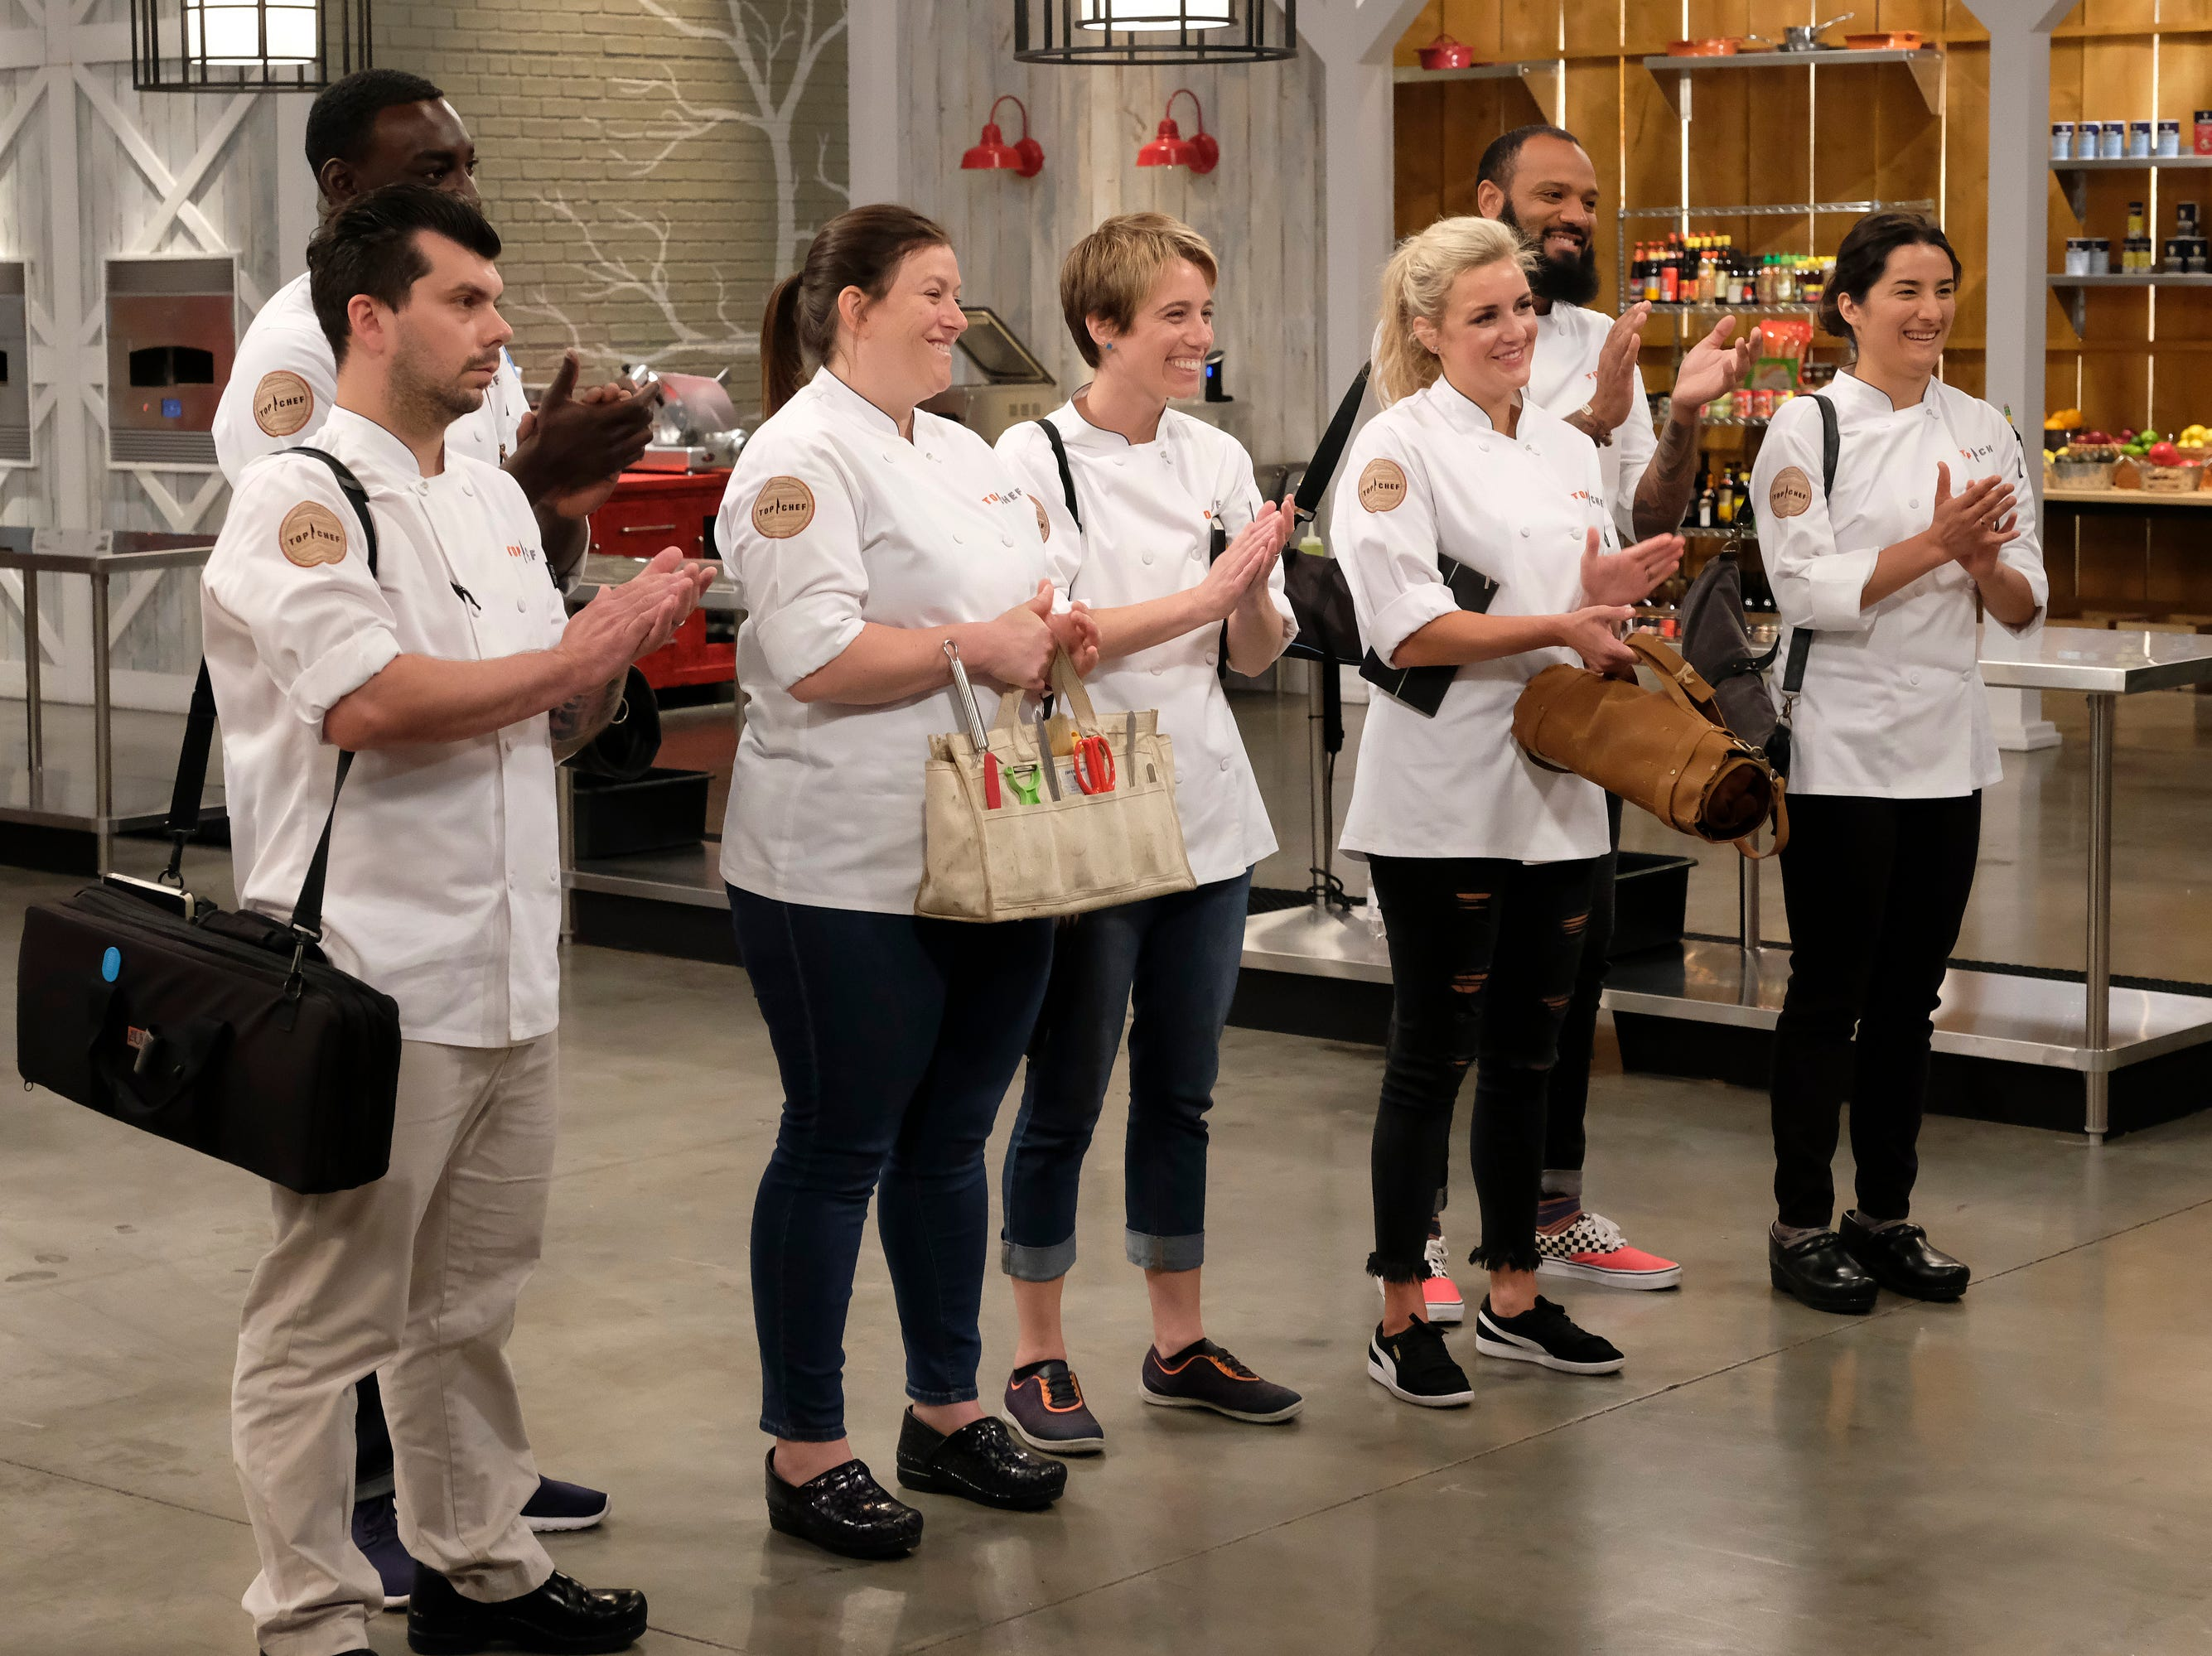 (From left to right): Contestants Eddie Konrad, Eric Adjepong, Sara Bradley, Adrienne Wright, Justin Sutherland and Michelle Minor on episode 10 of Bravo's 'Top Chef: Kentucky' season.